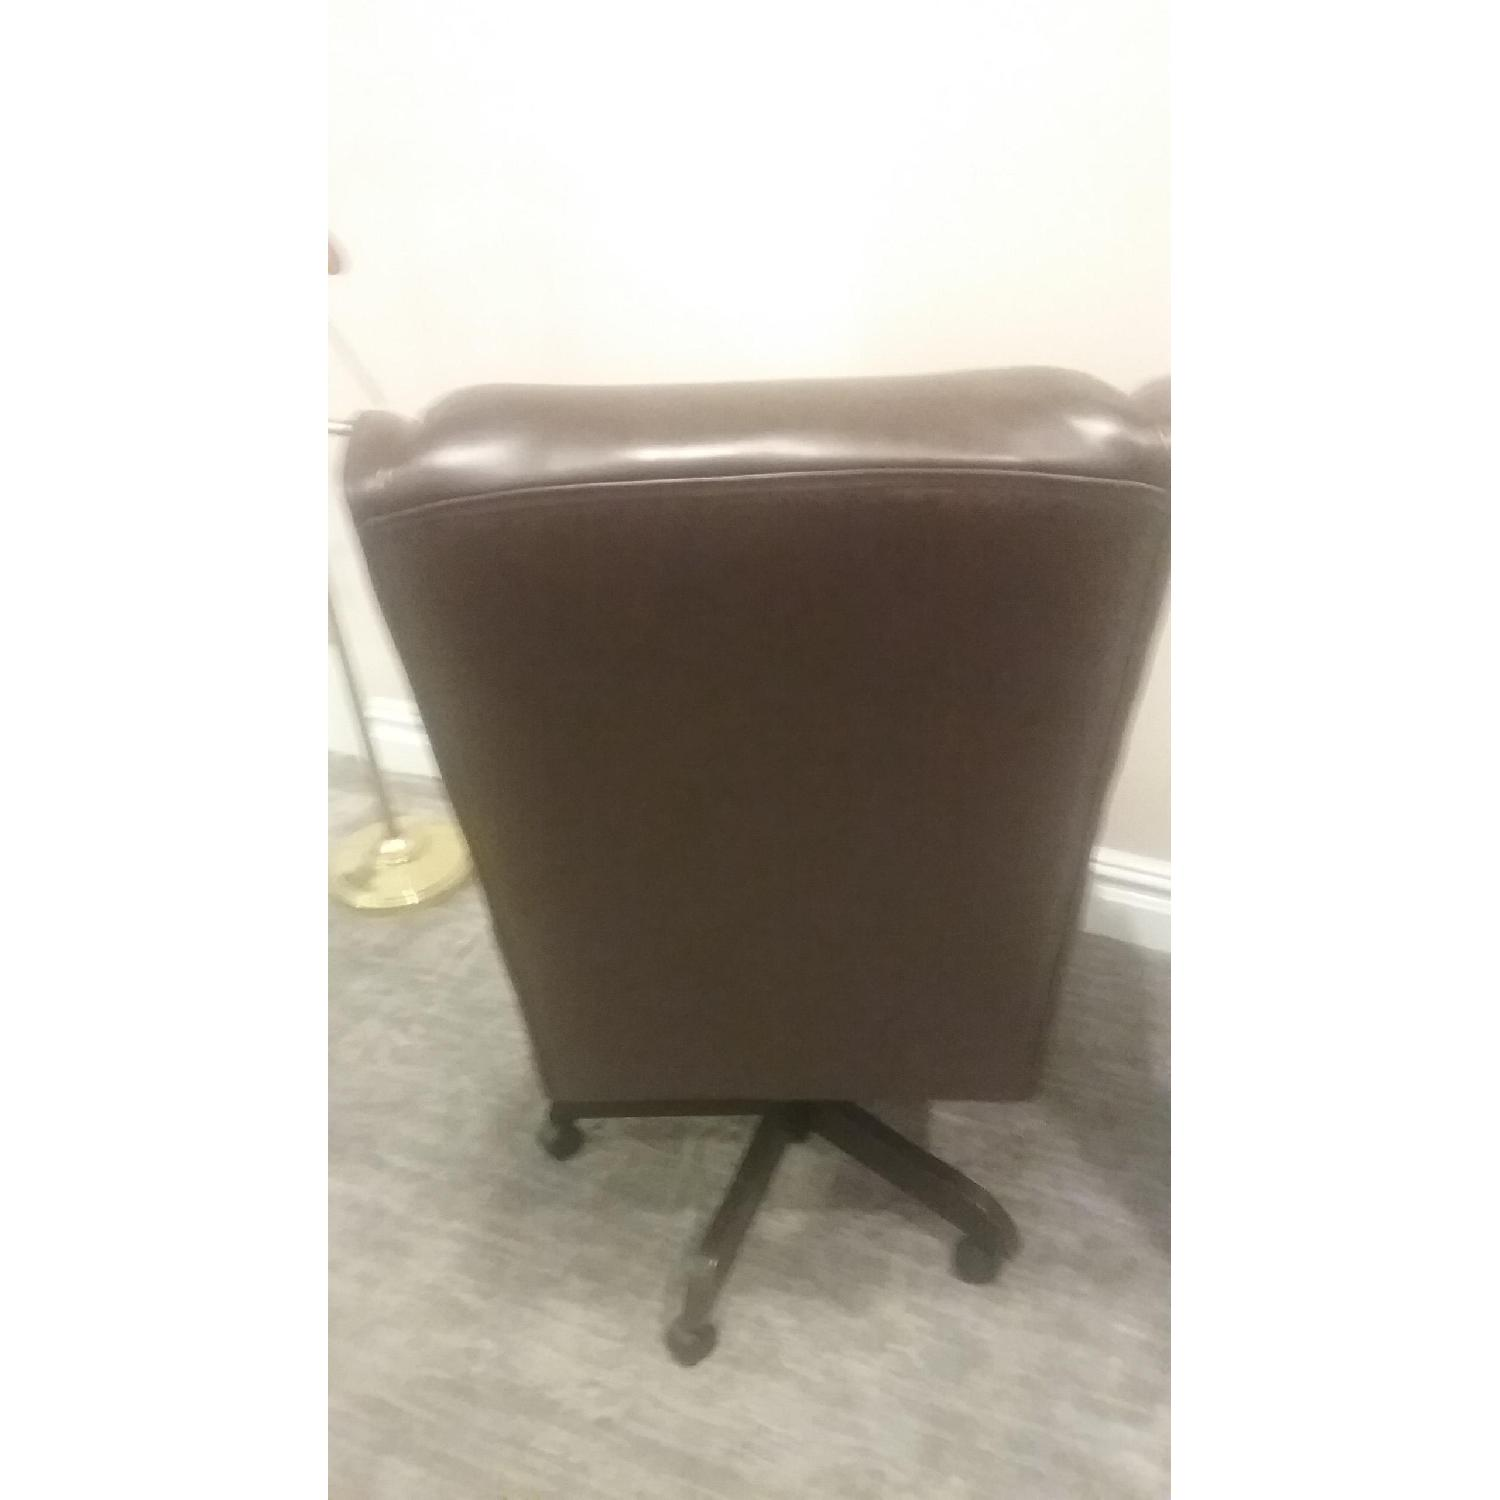 Darby Home Co. Executive Chair-2